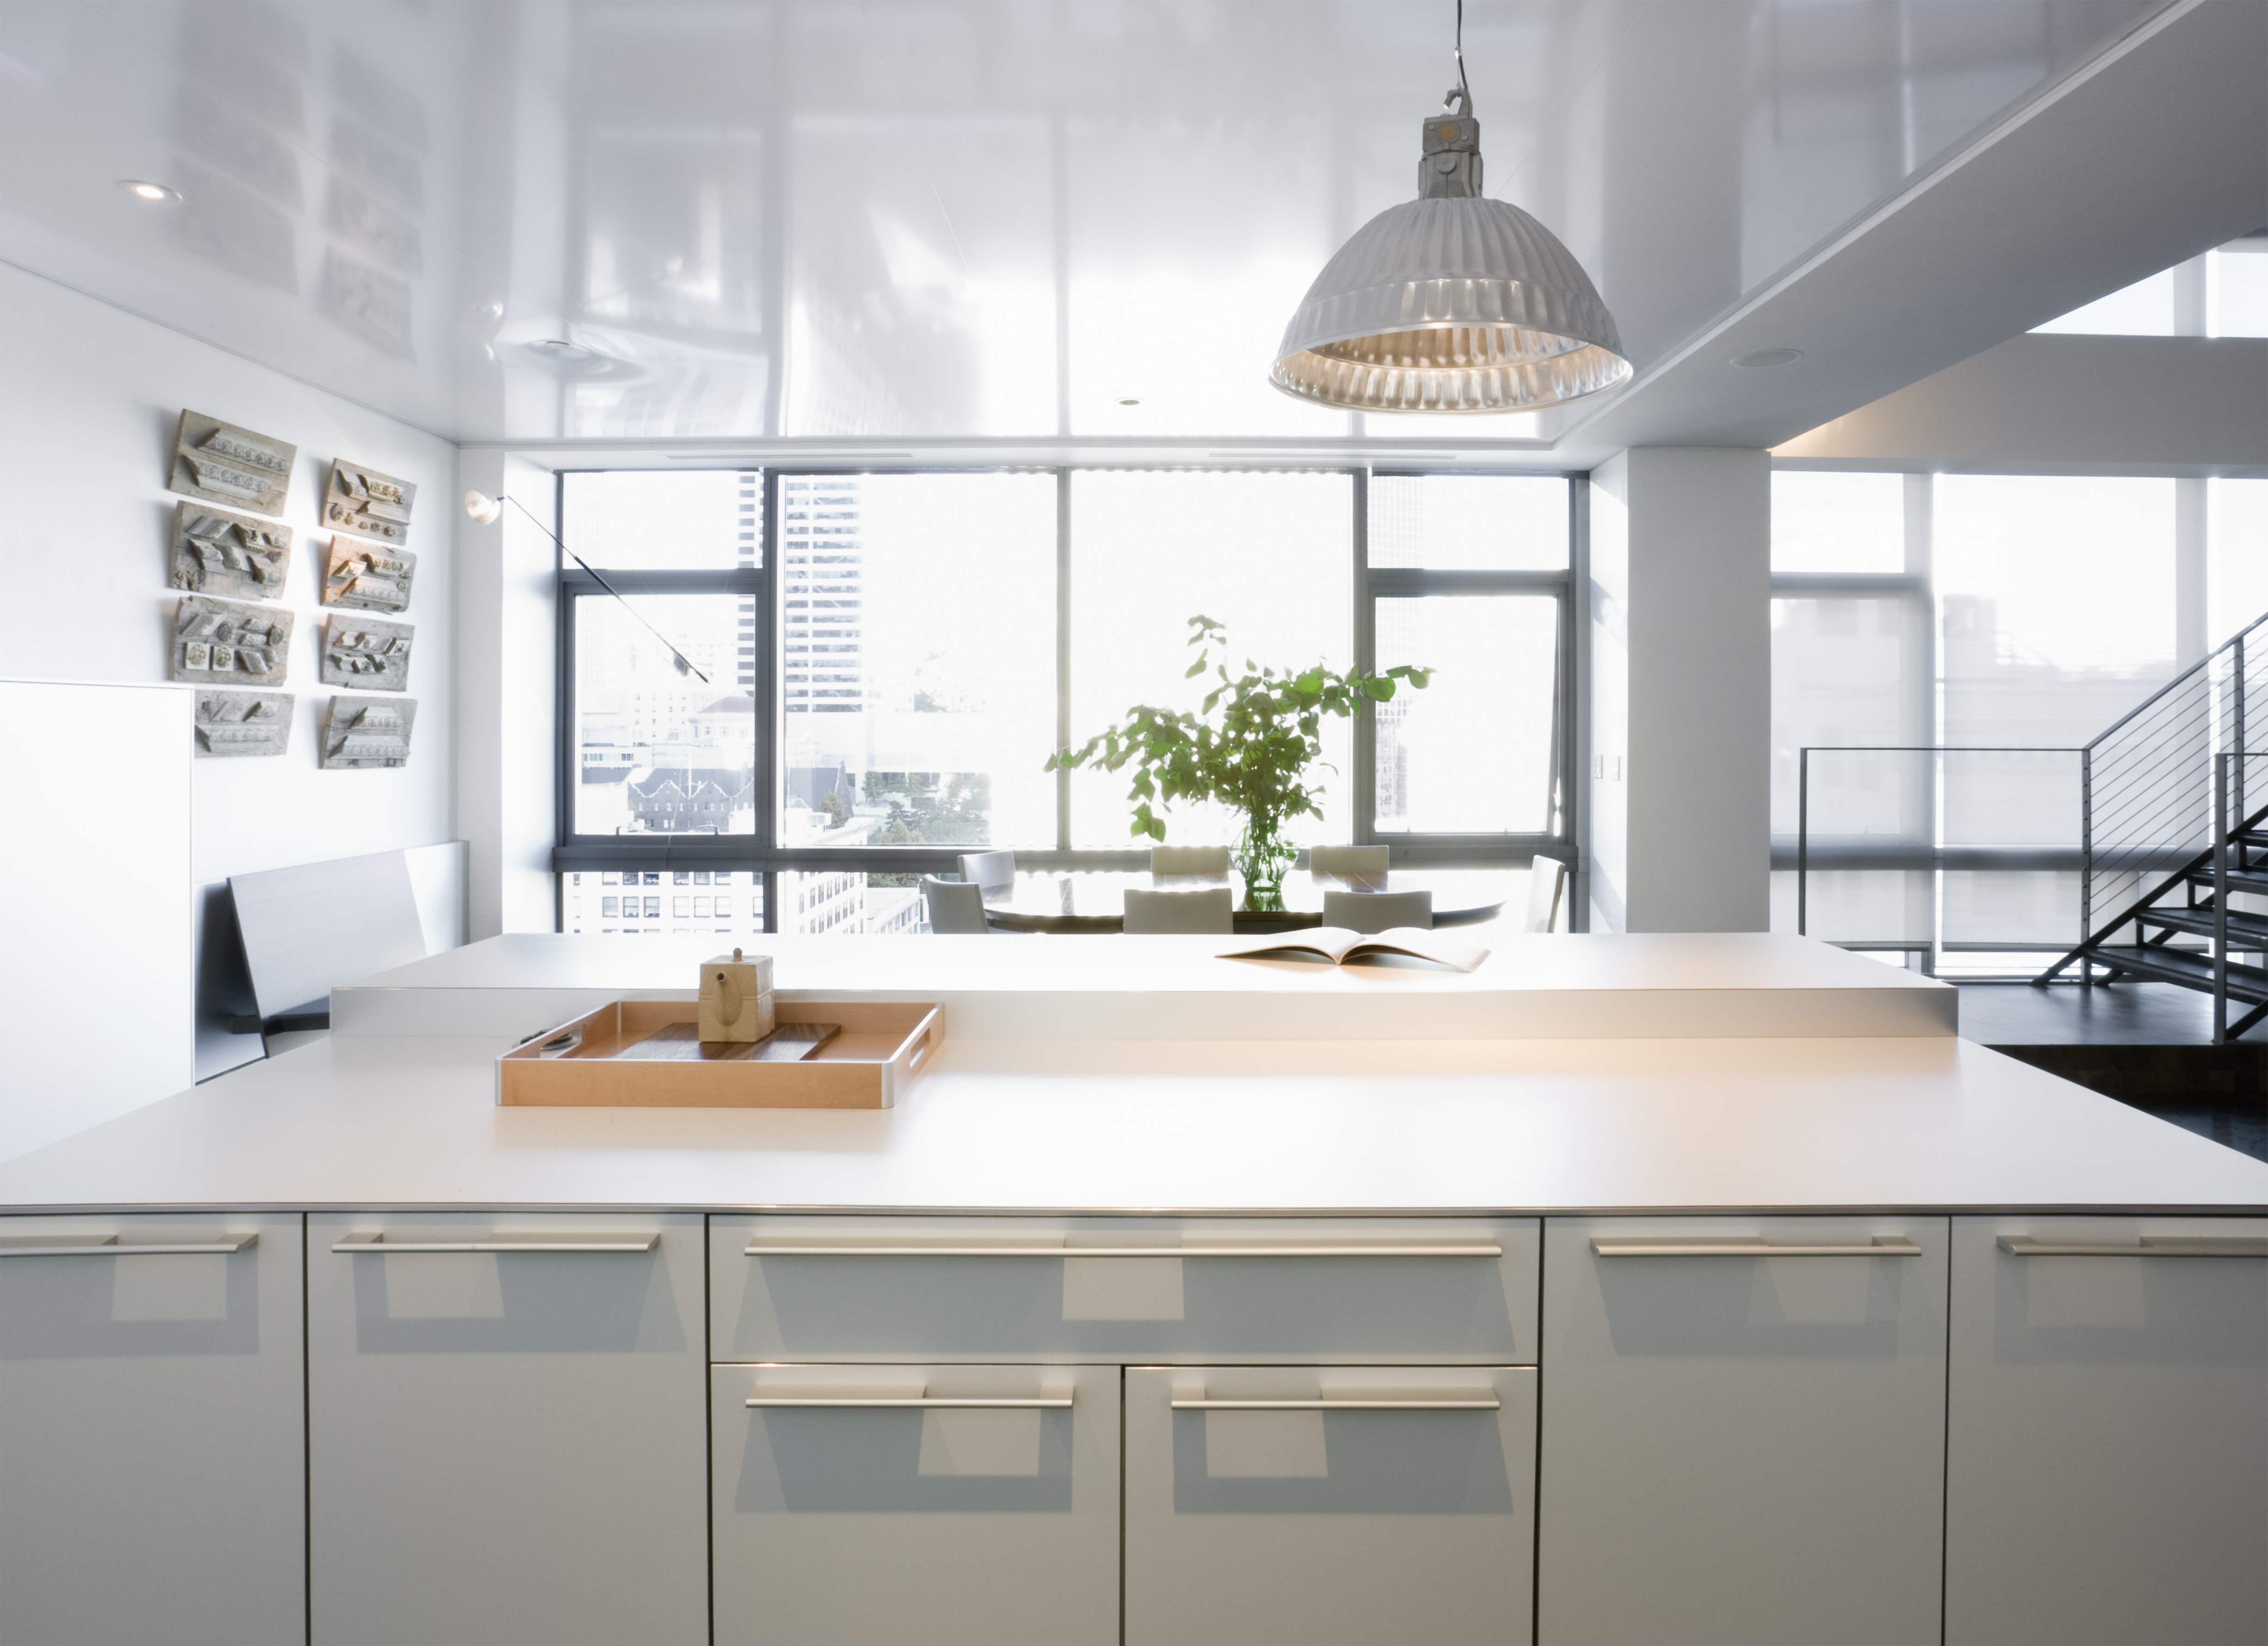 How to Remove Bleach Stains From a Countertop | Hunker